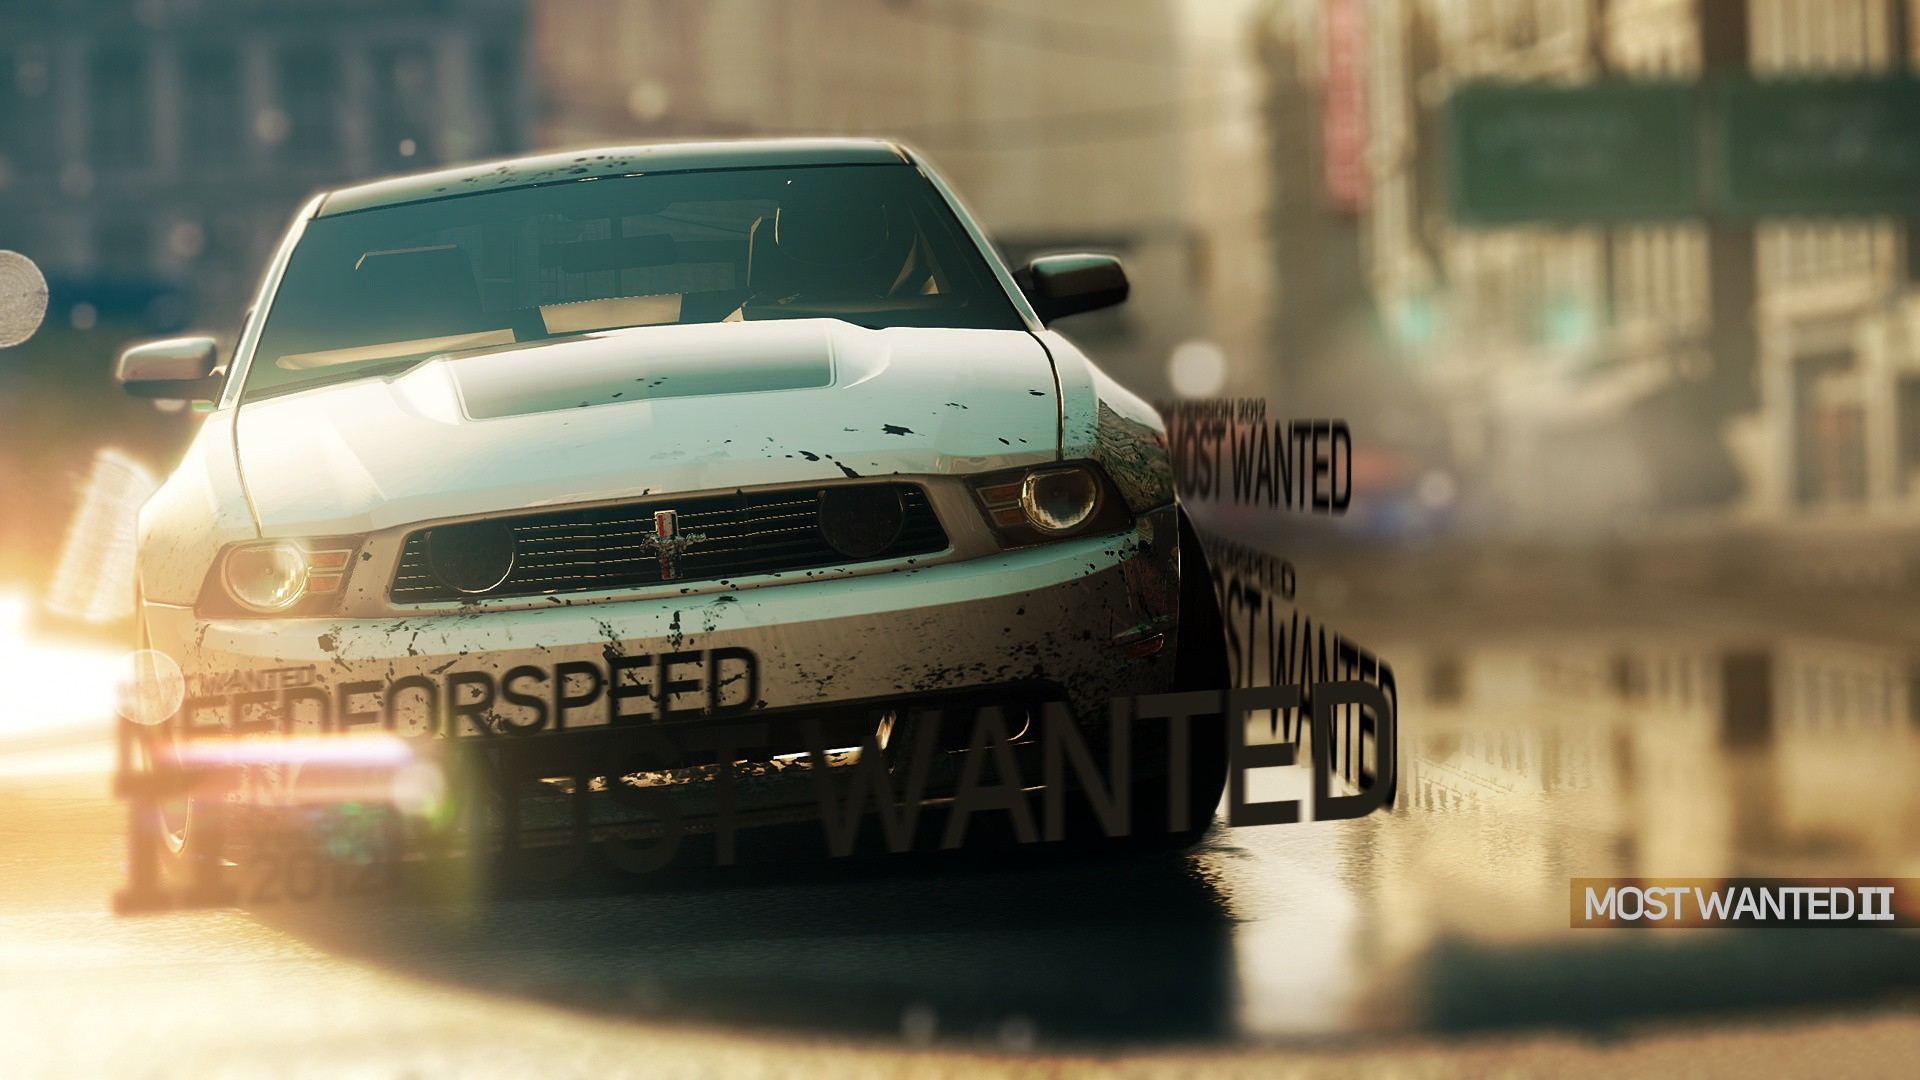 Need for speed most wanted 2 Full HD Wallpaper and ...